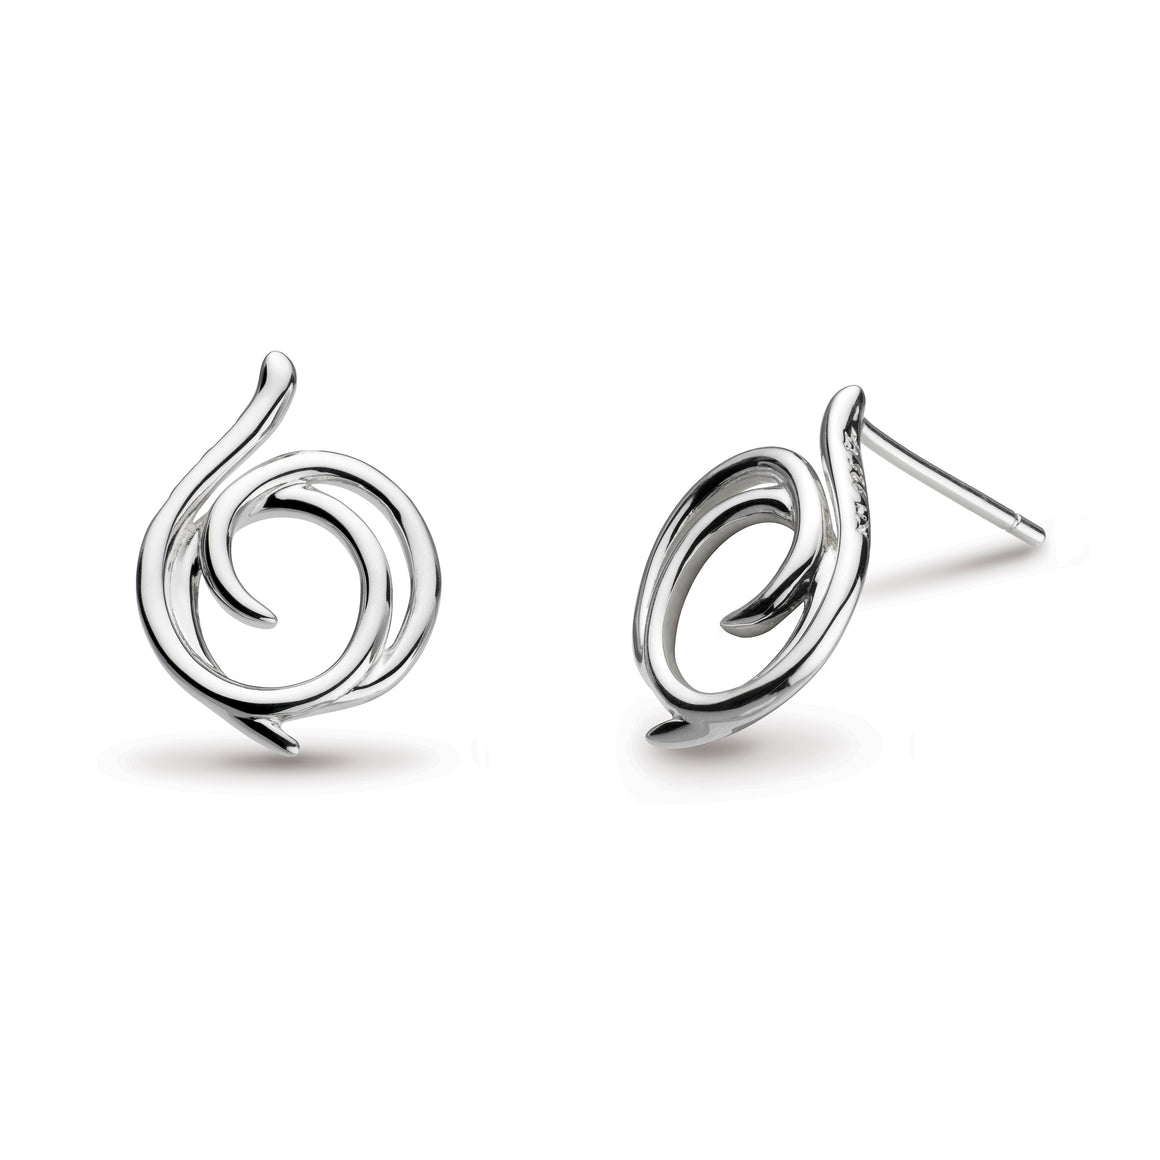 Entwine Helix Large Wrap Stud Earrings - 40237hp016